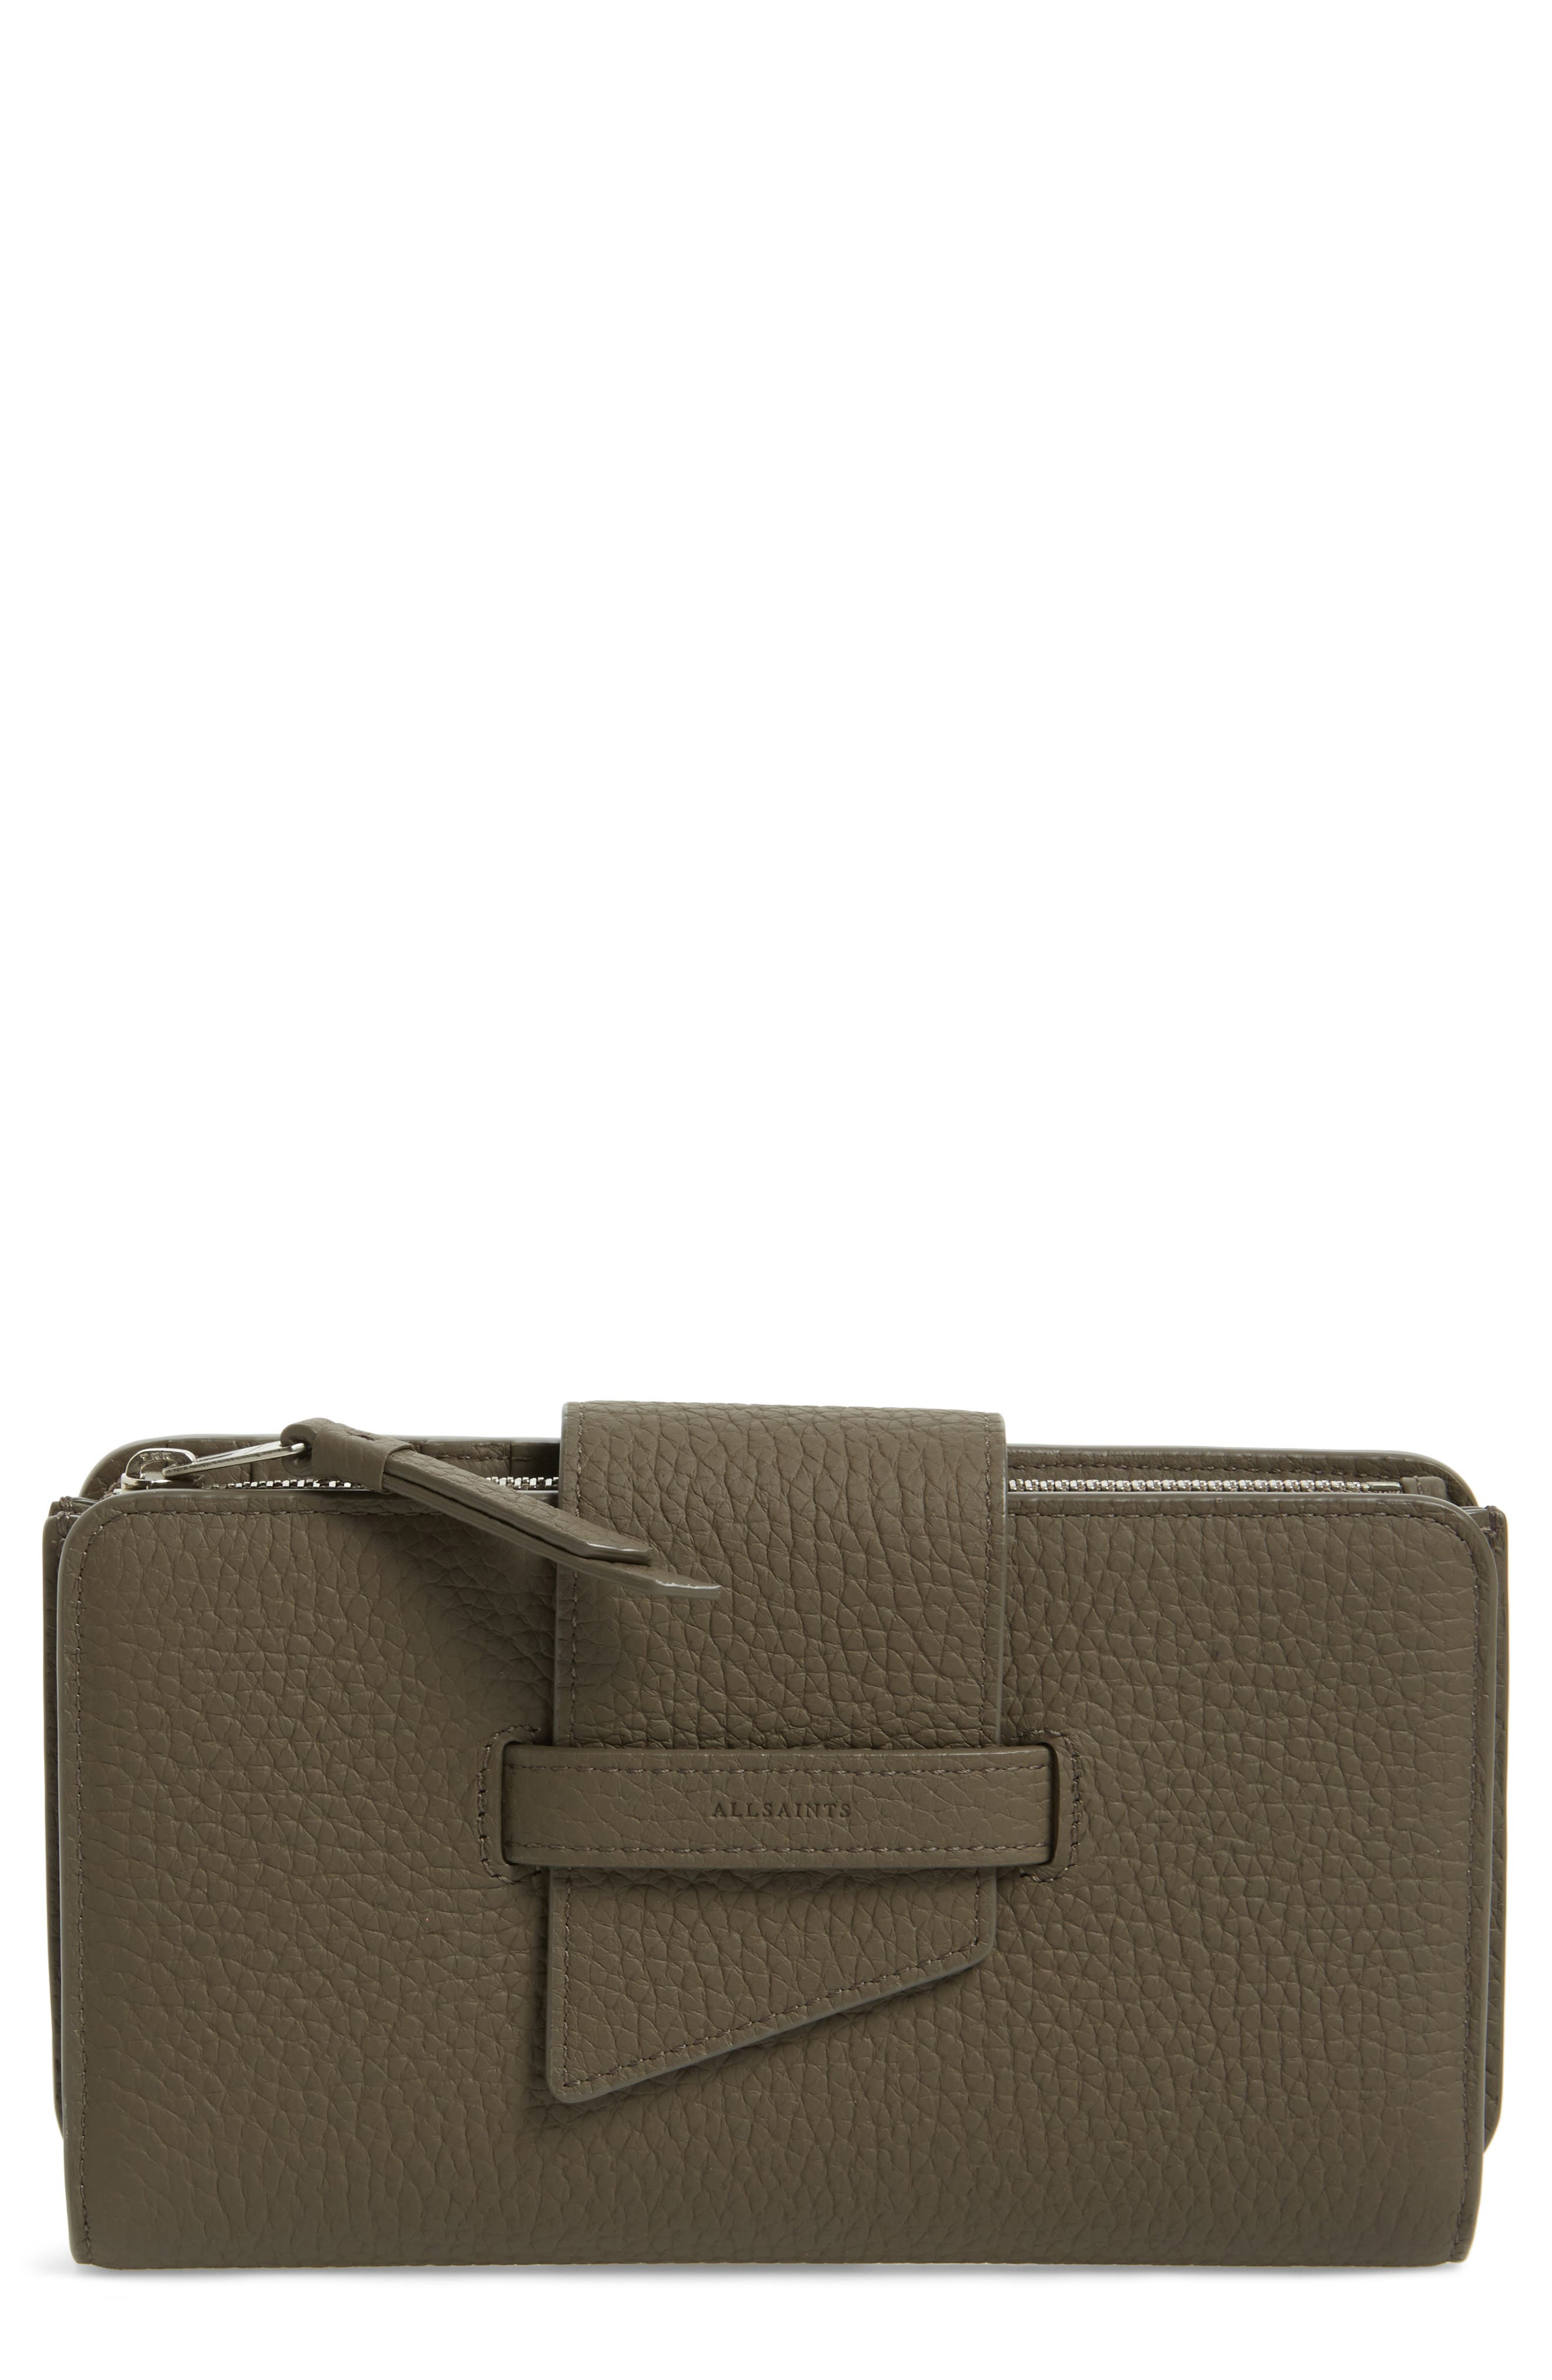 ALLSAINTS Ray Leather Wallet